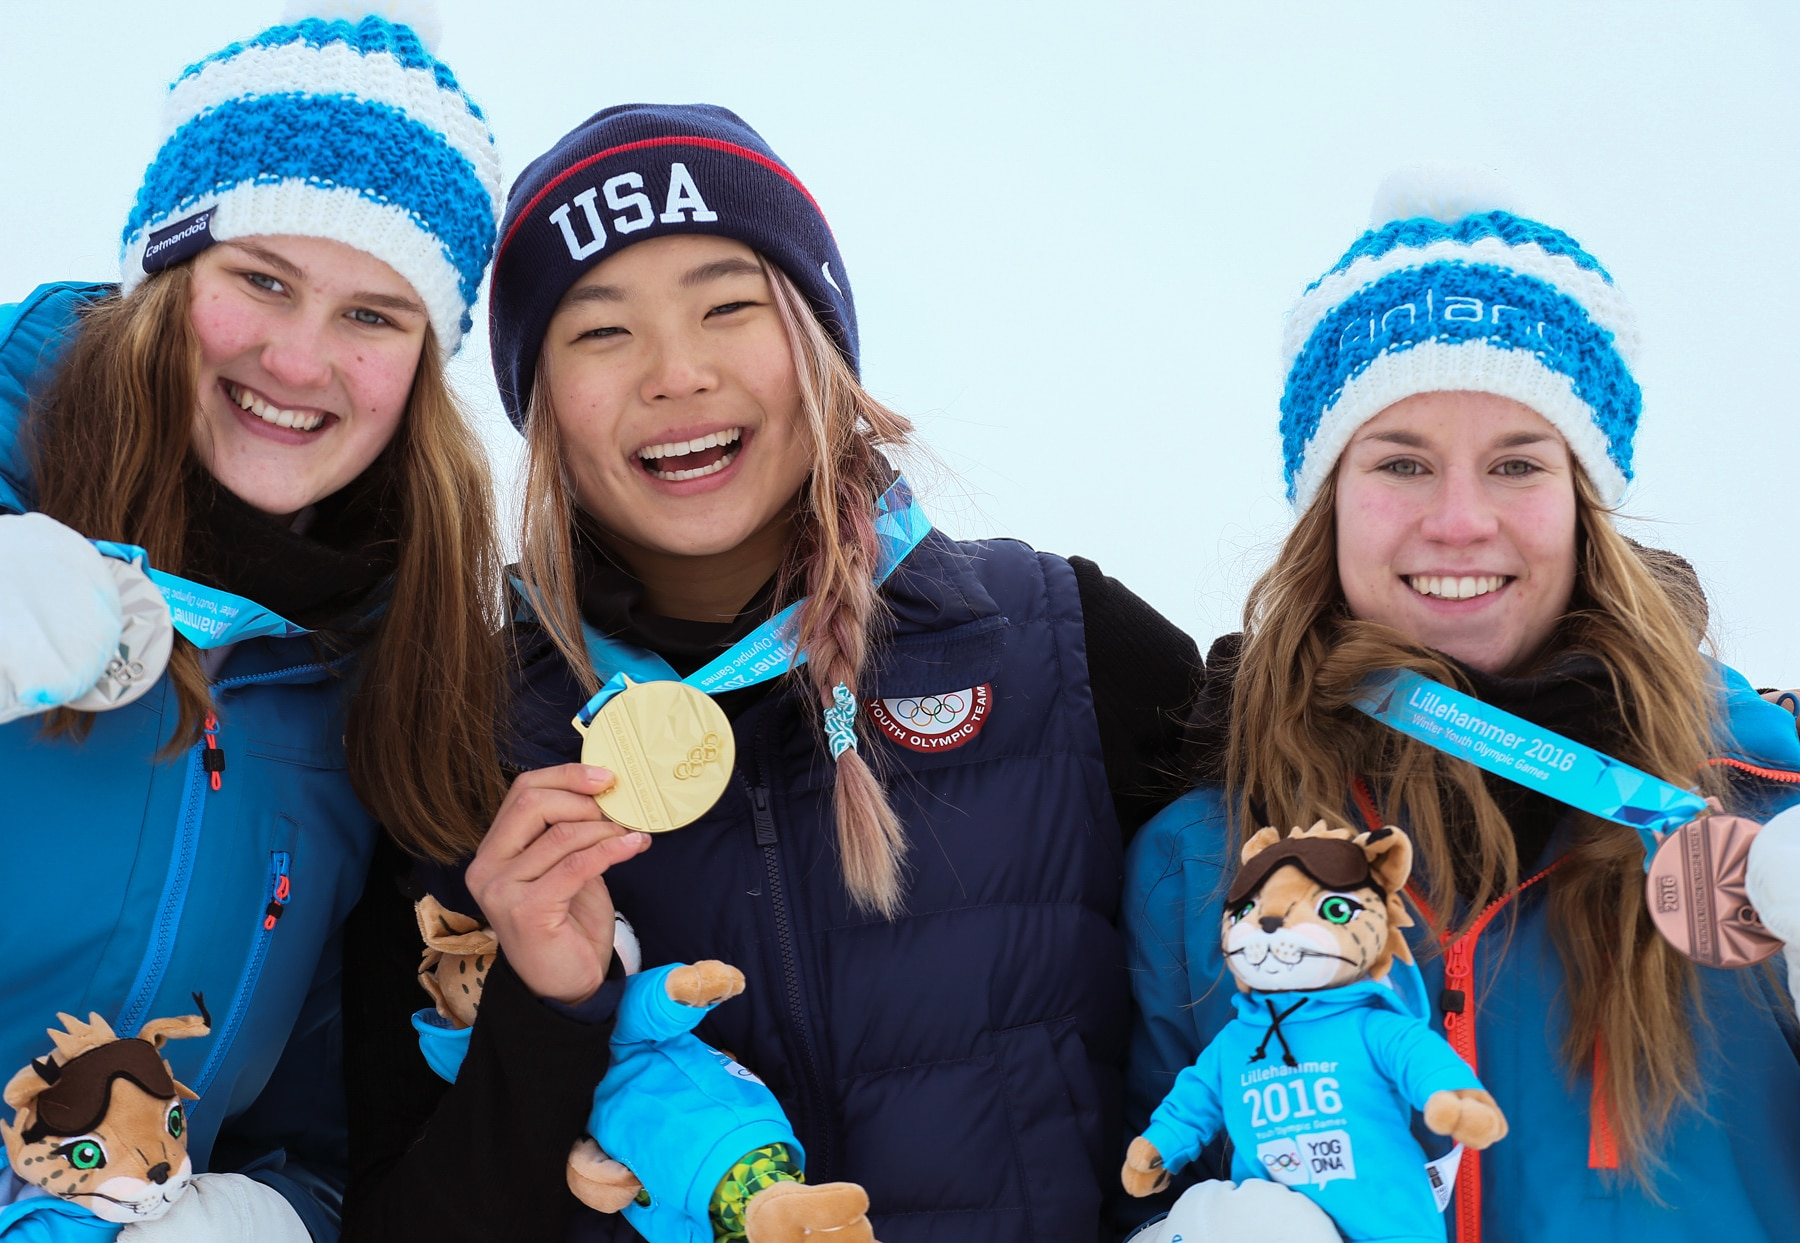 Three women snowboarders showing off medals (Youth Information Service/International Olympic Committee)